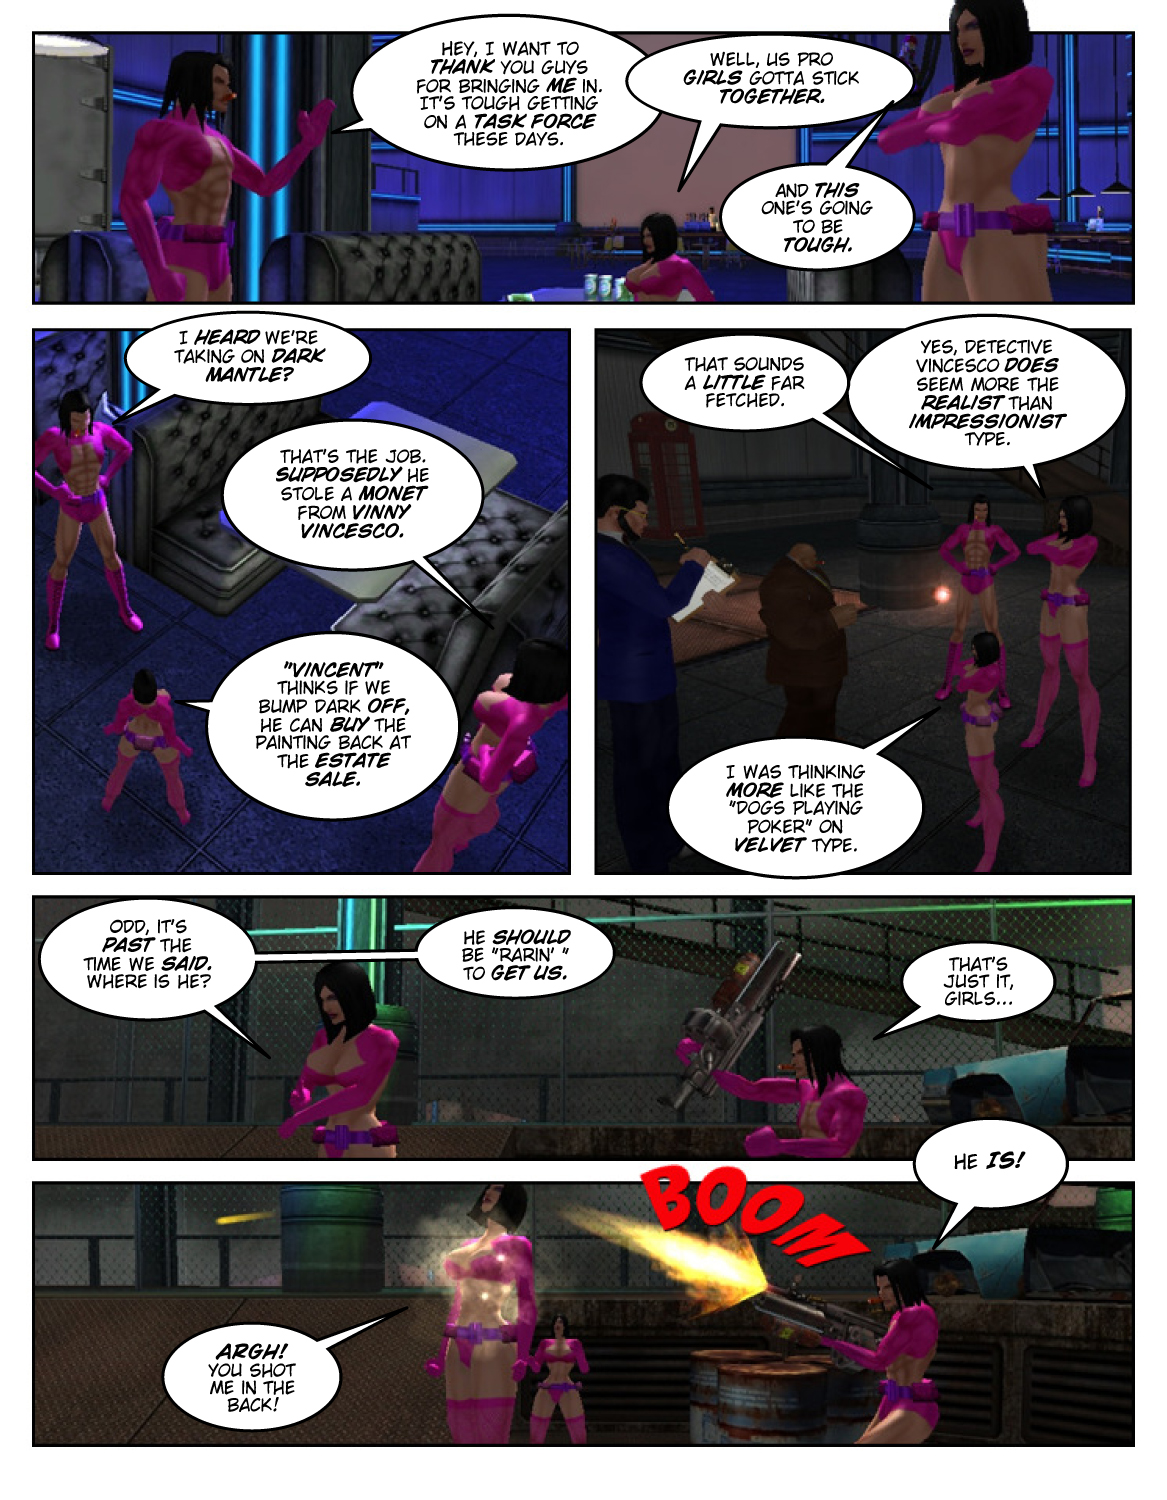 Les Professionnels 1 Page 5 – Betrayal Most Foul